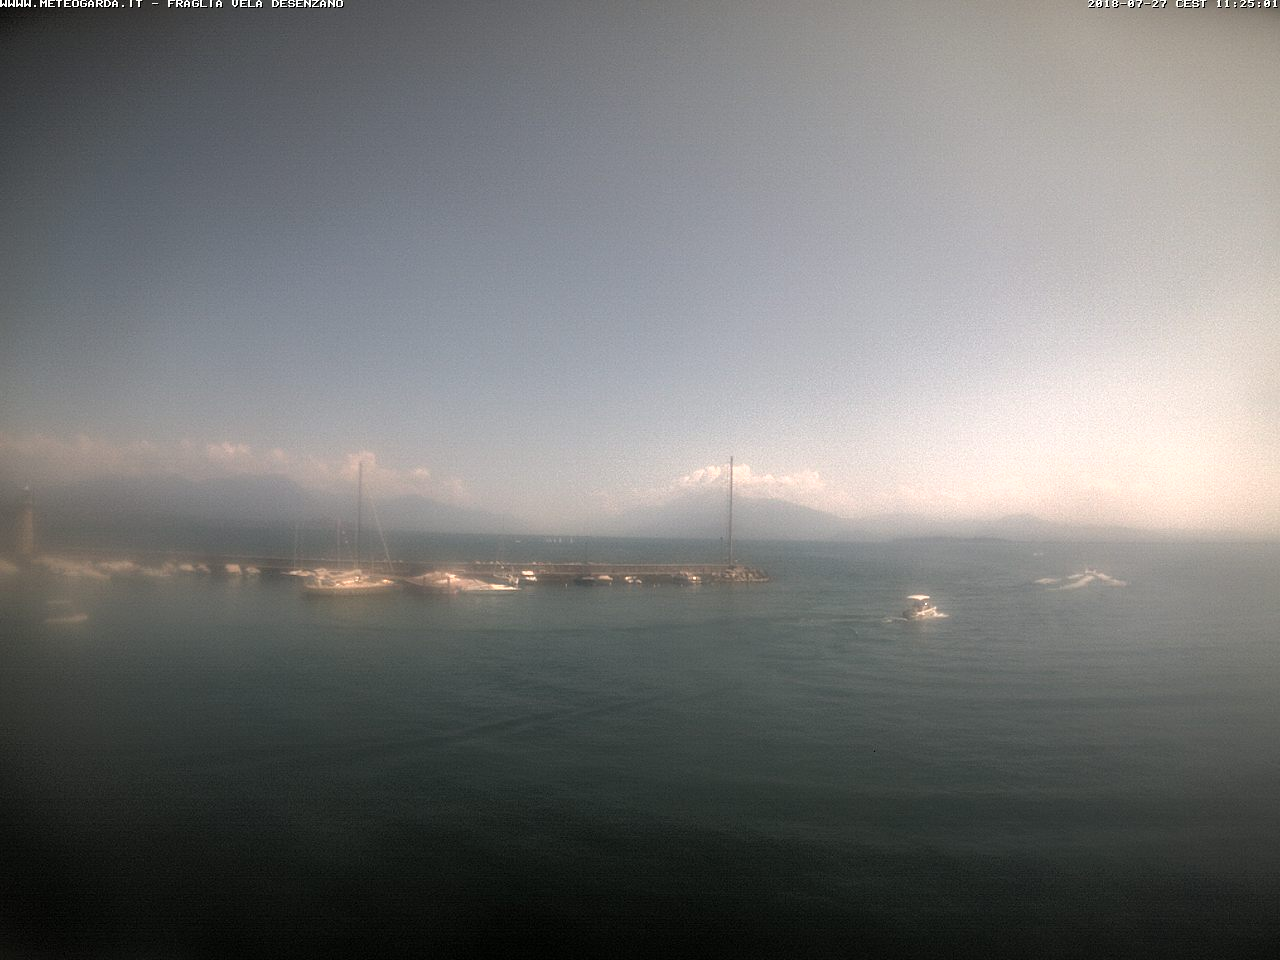 Meteogarda Desenzano Webcam